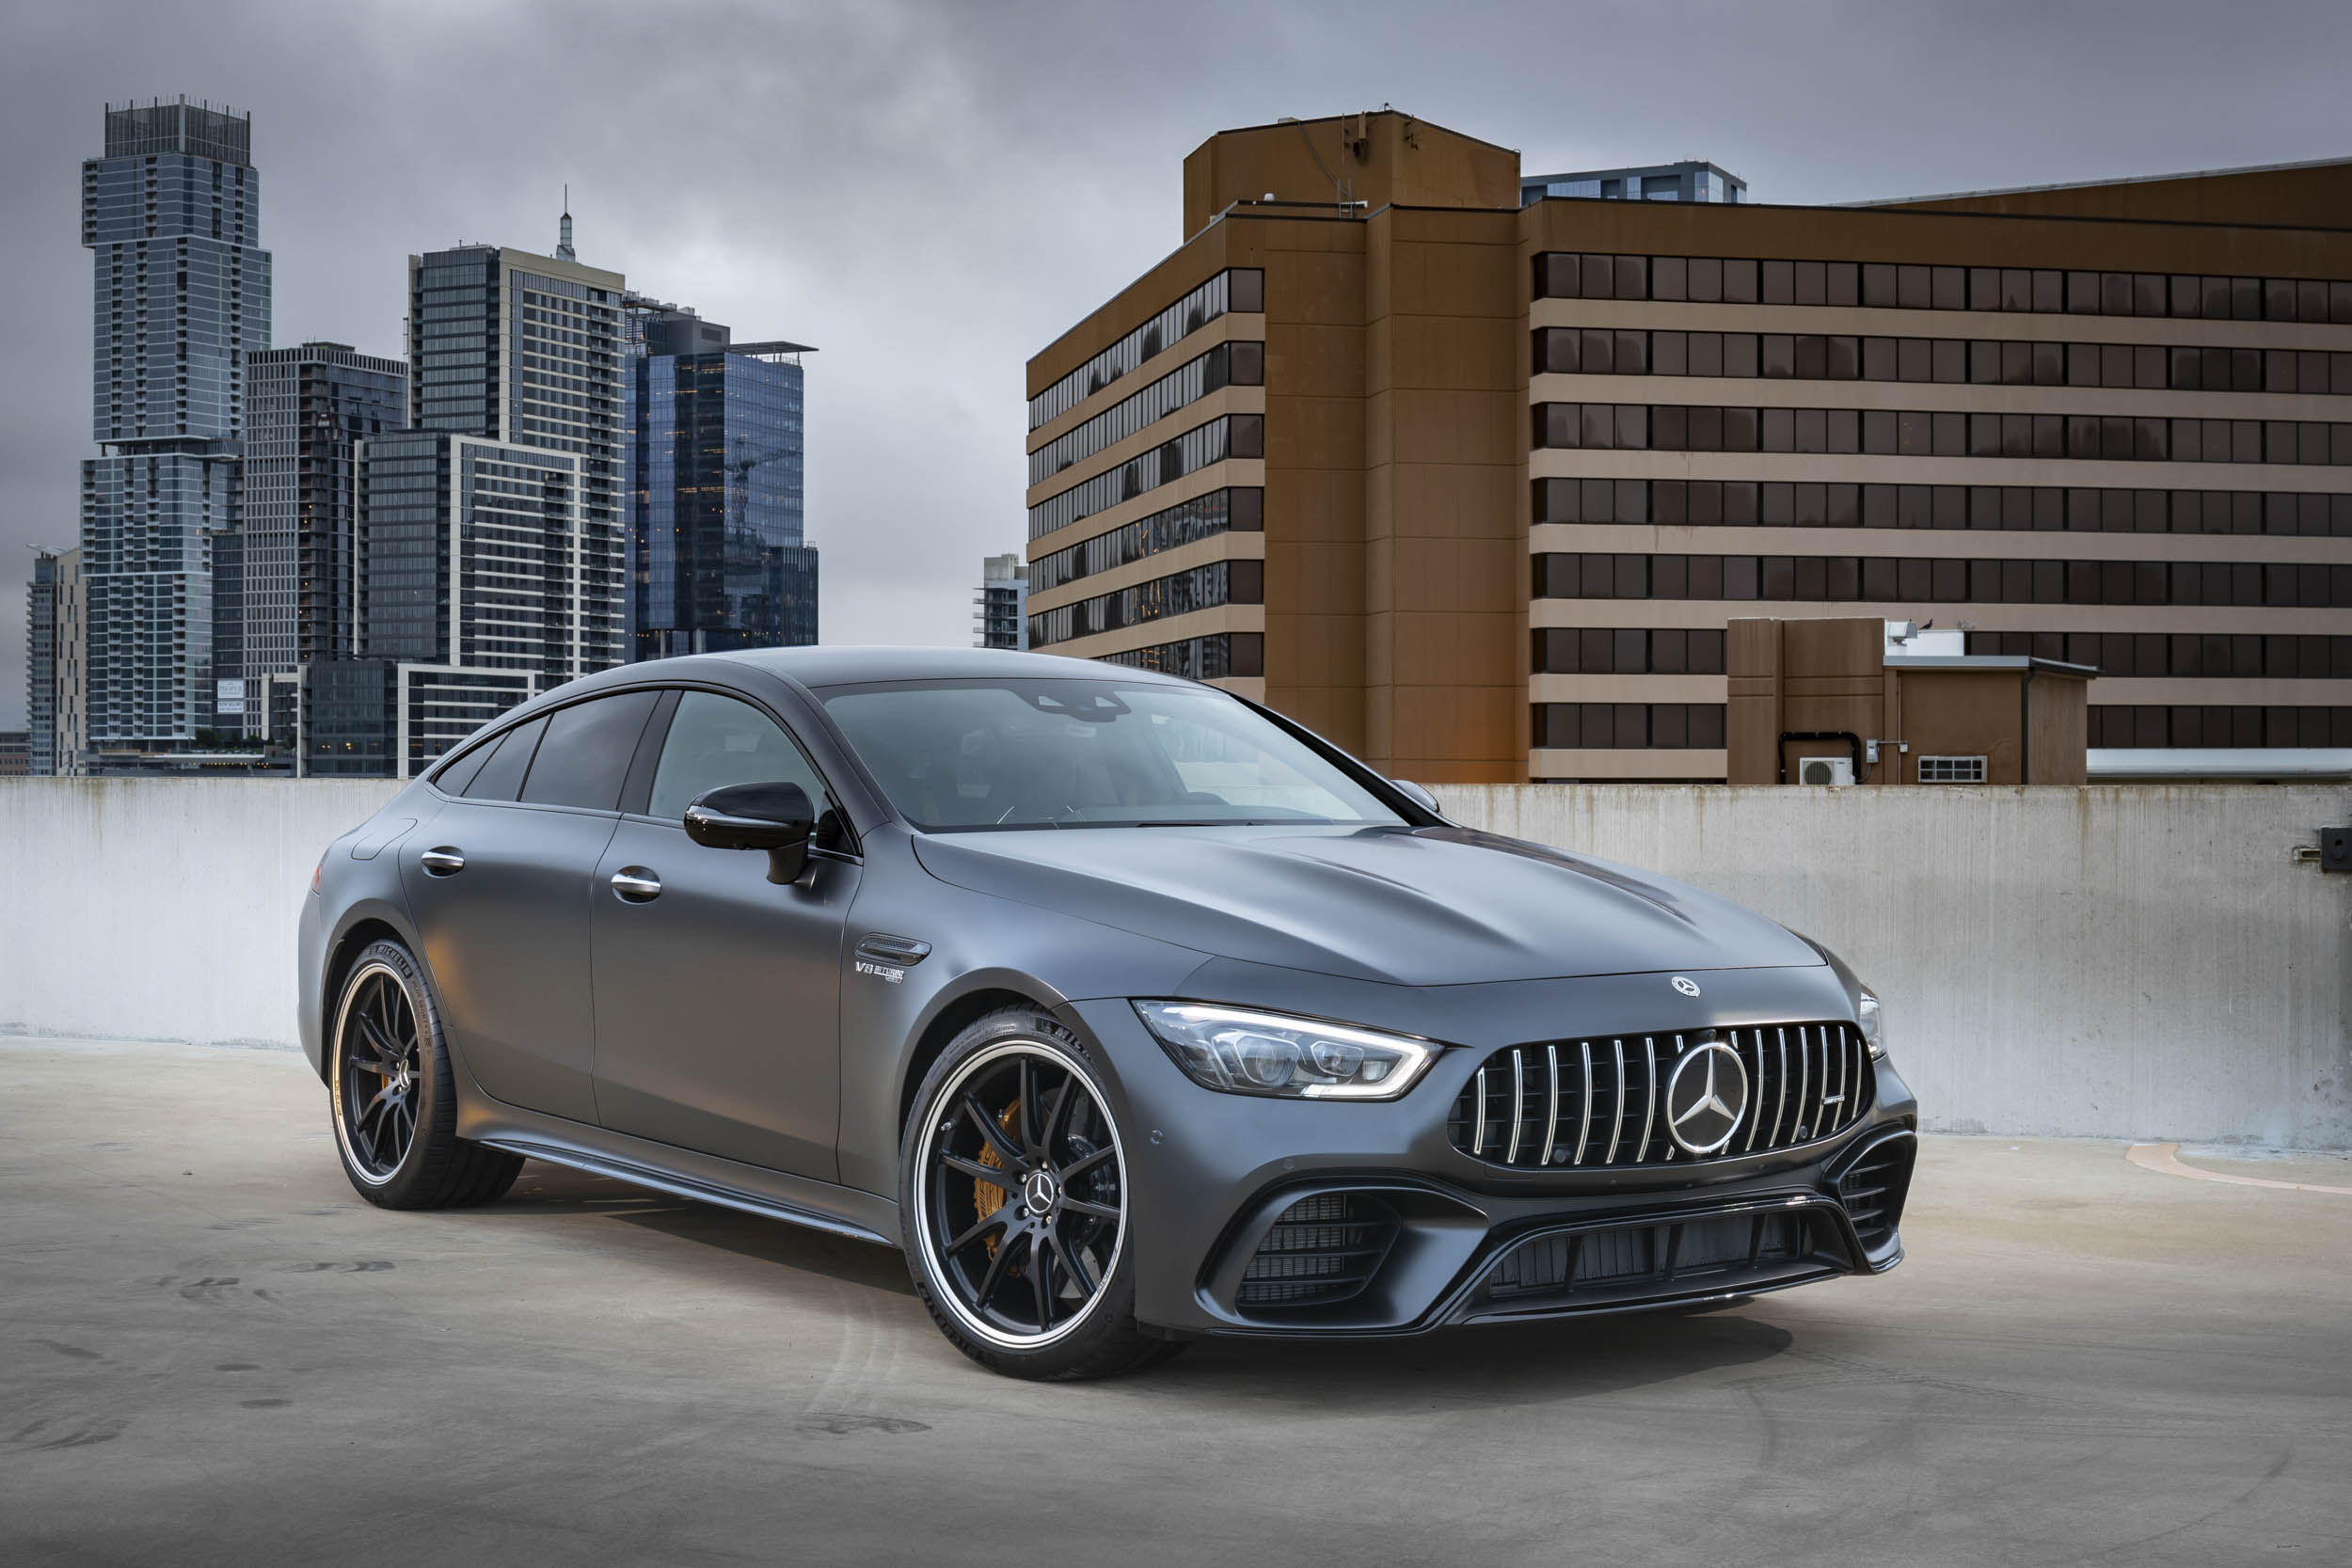 Mercedes-AMG GT 63 S low front 3/4